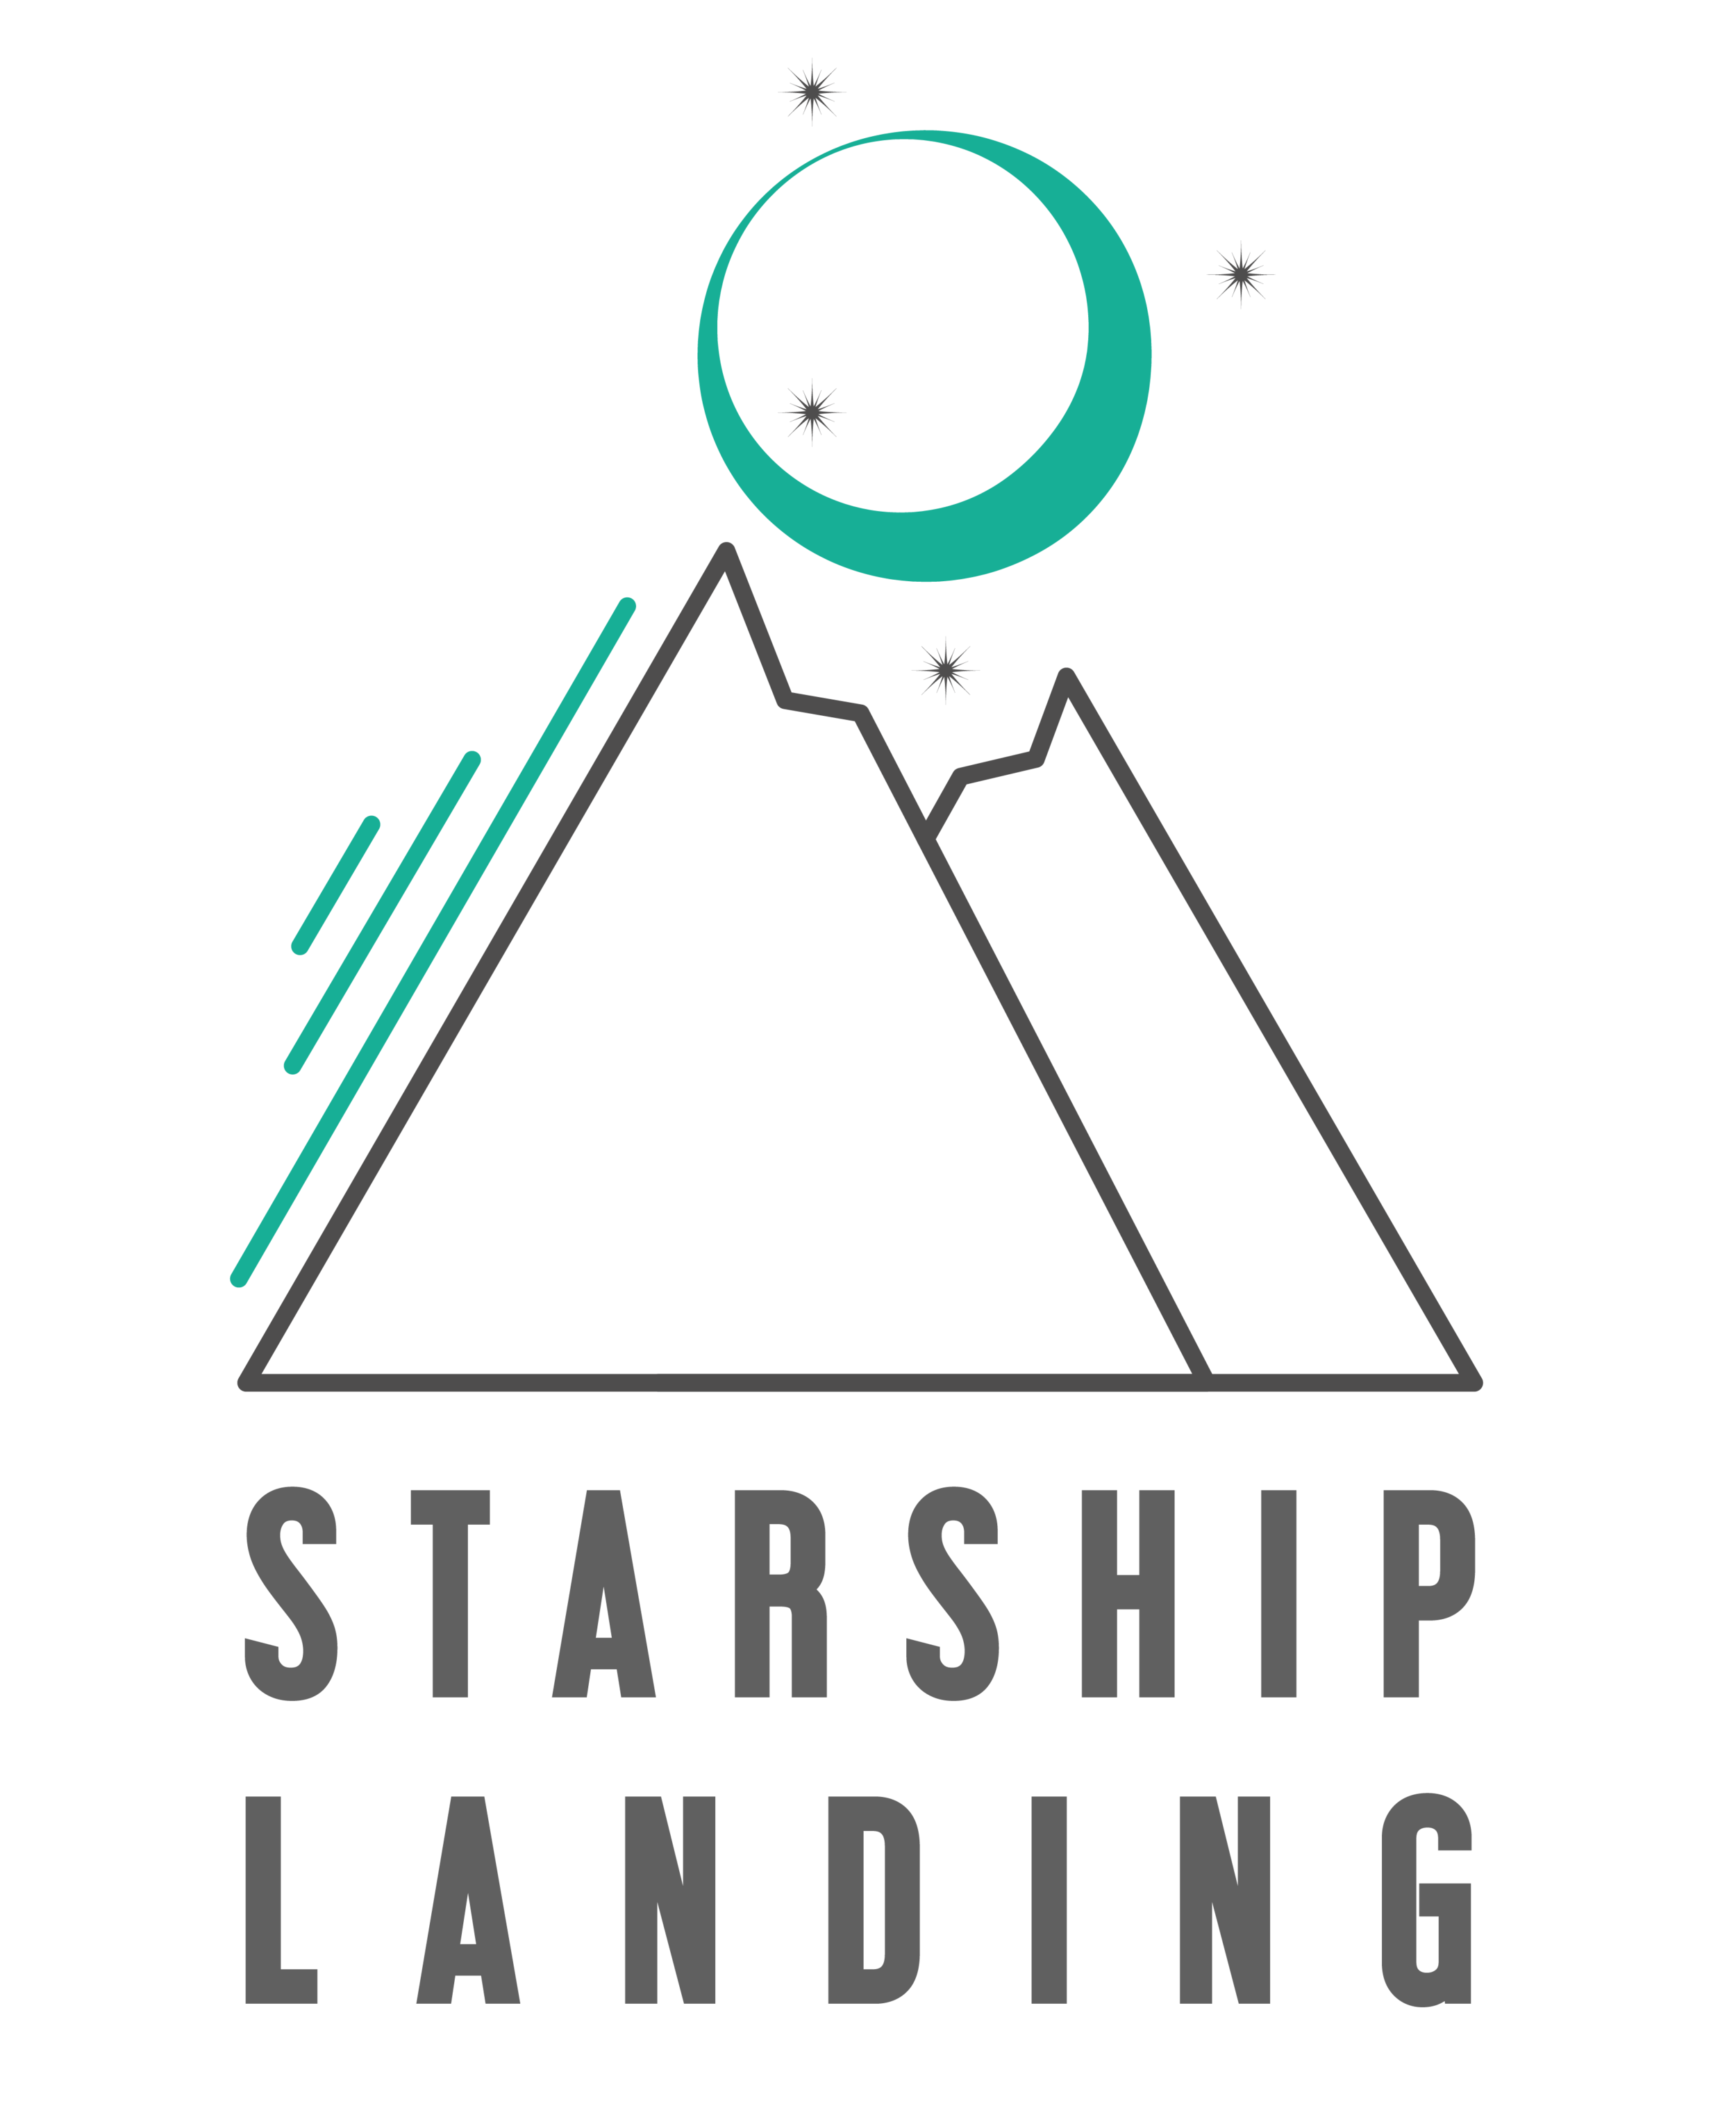 StarshipLanding_final-03_-03.png